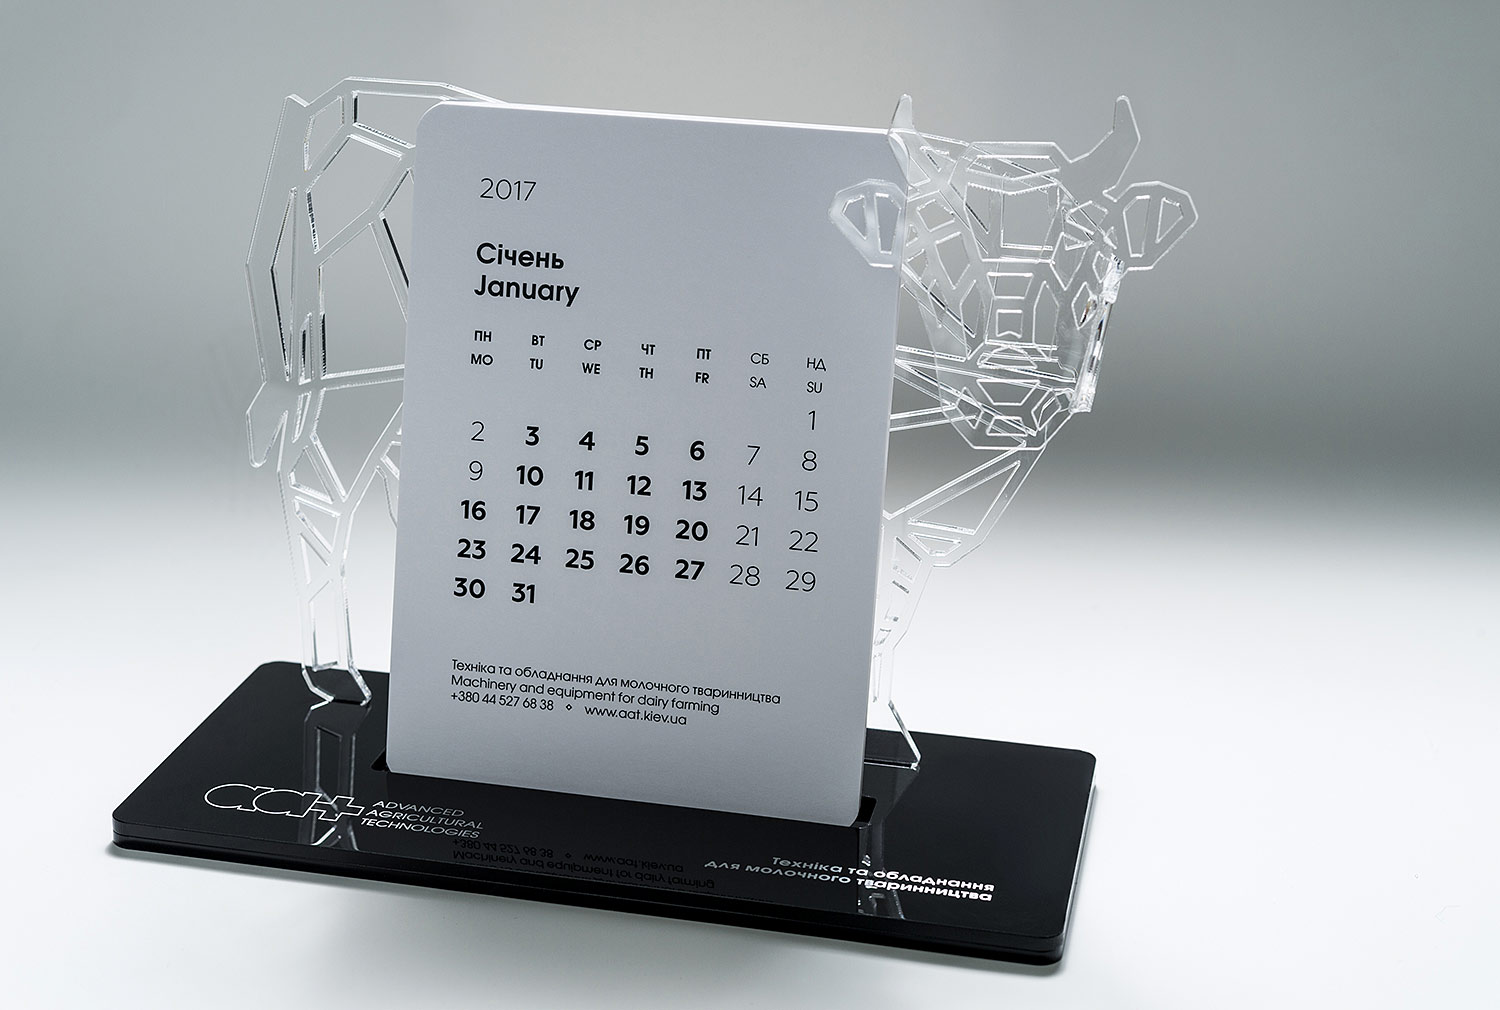 Creative desktop calendar Advanced Agricultural Technologies (aat). Cow as a symbol of dairy farming. Stylish acrylic stand for calendar sheets and note papers.